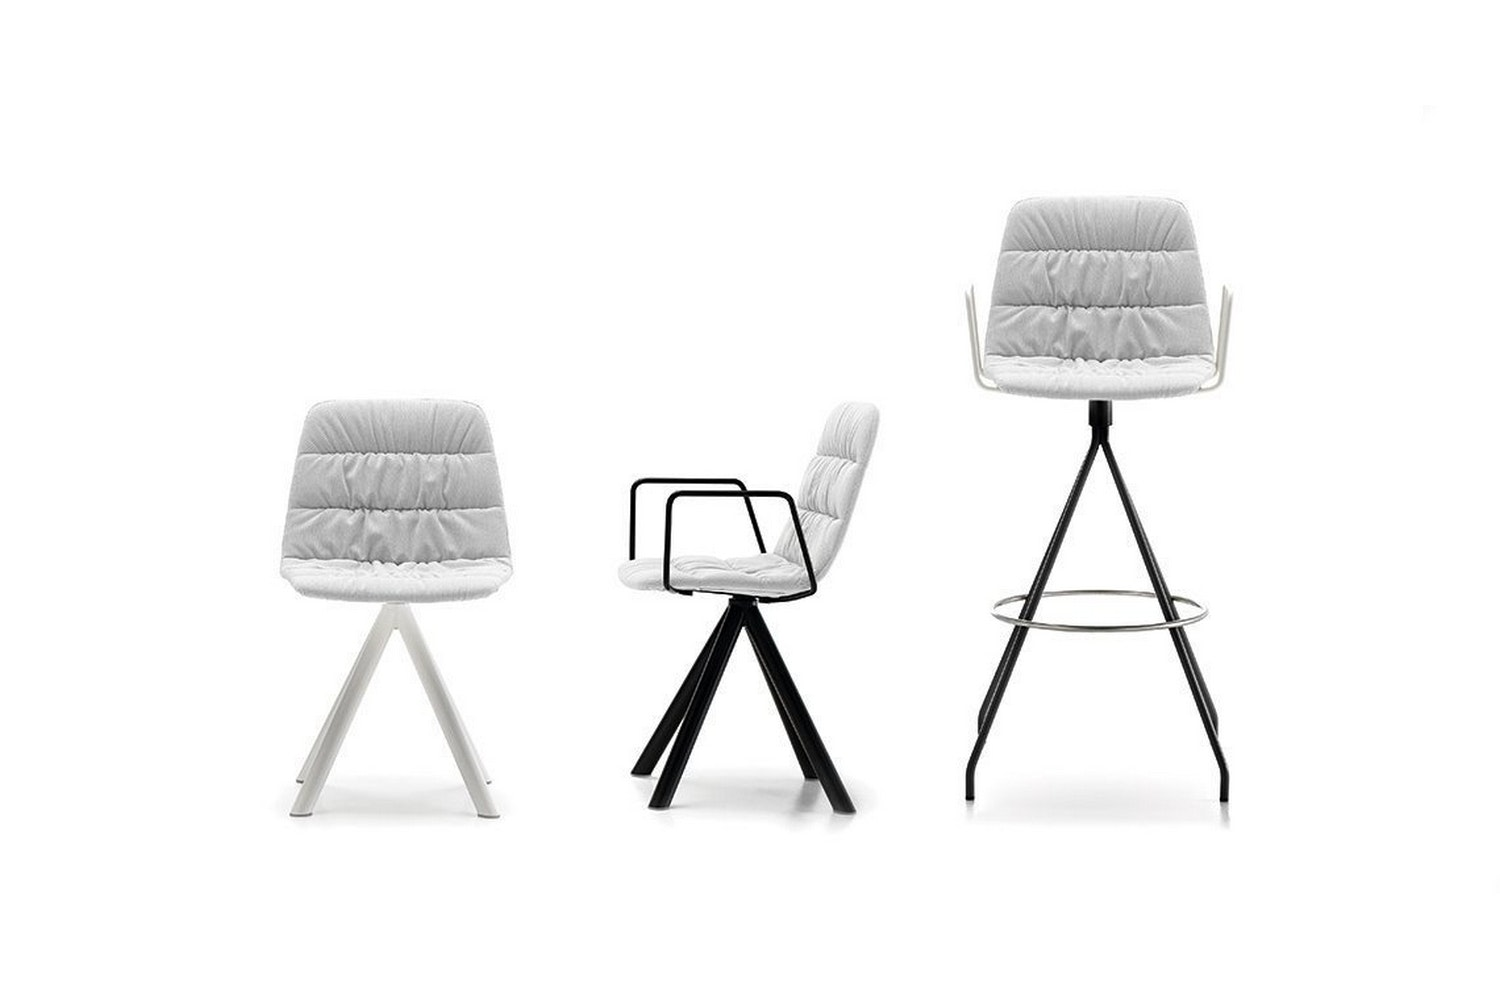 Maarten Chair by Victor Carrasco for Viccarbe